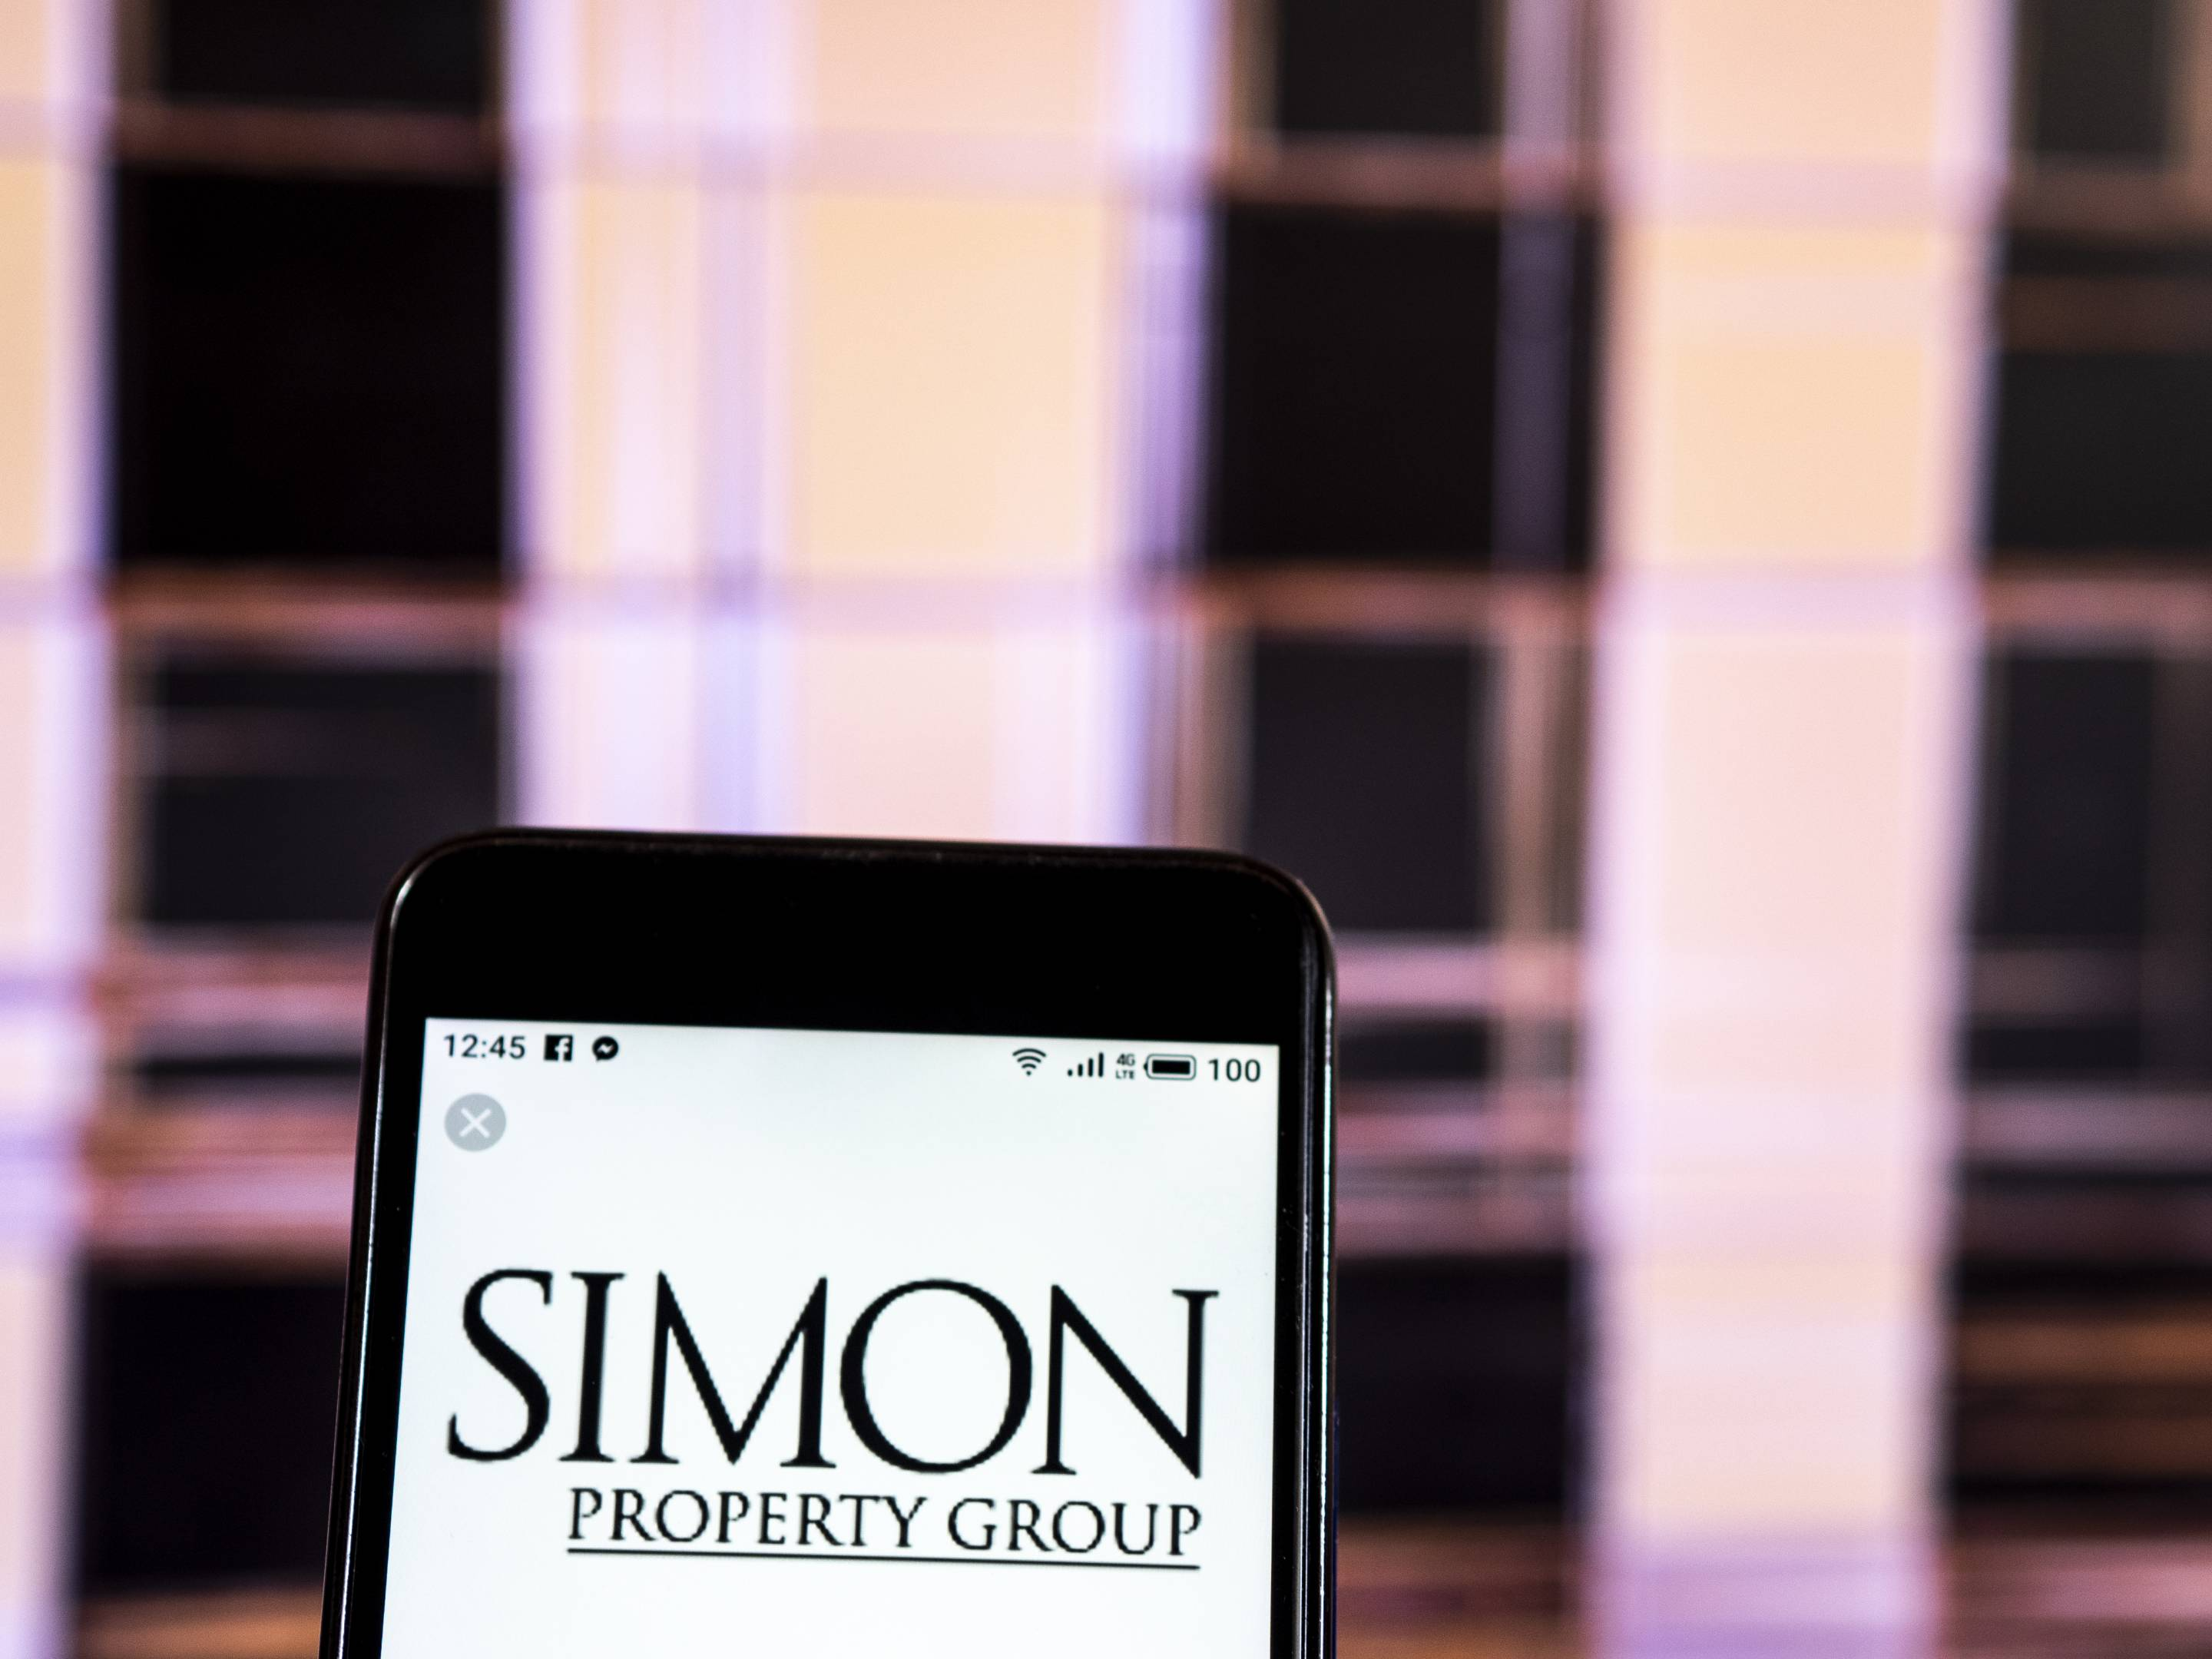 Simon Property Group Real estate company logo seen displayed